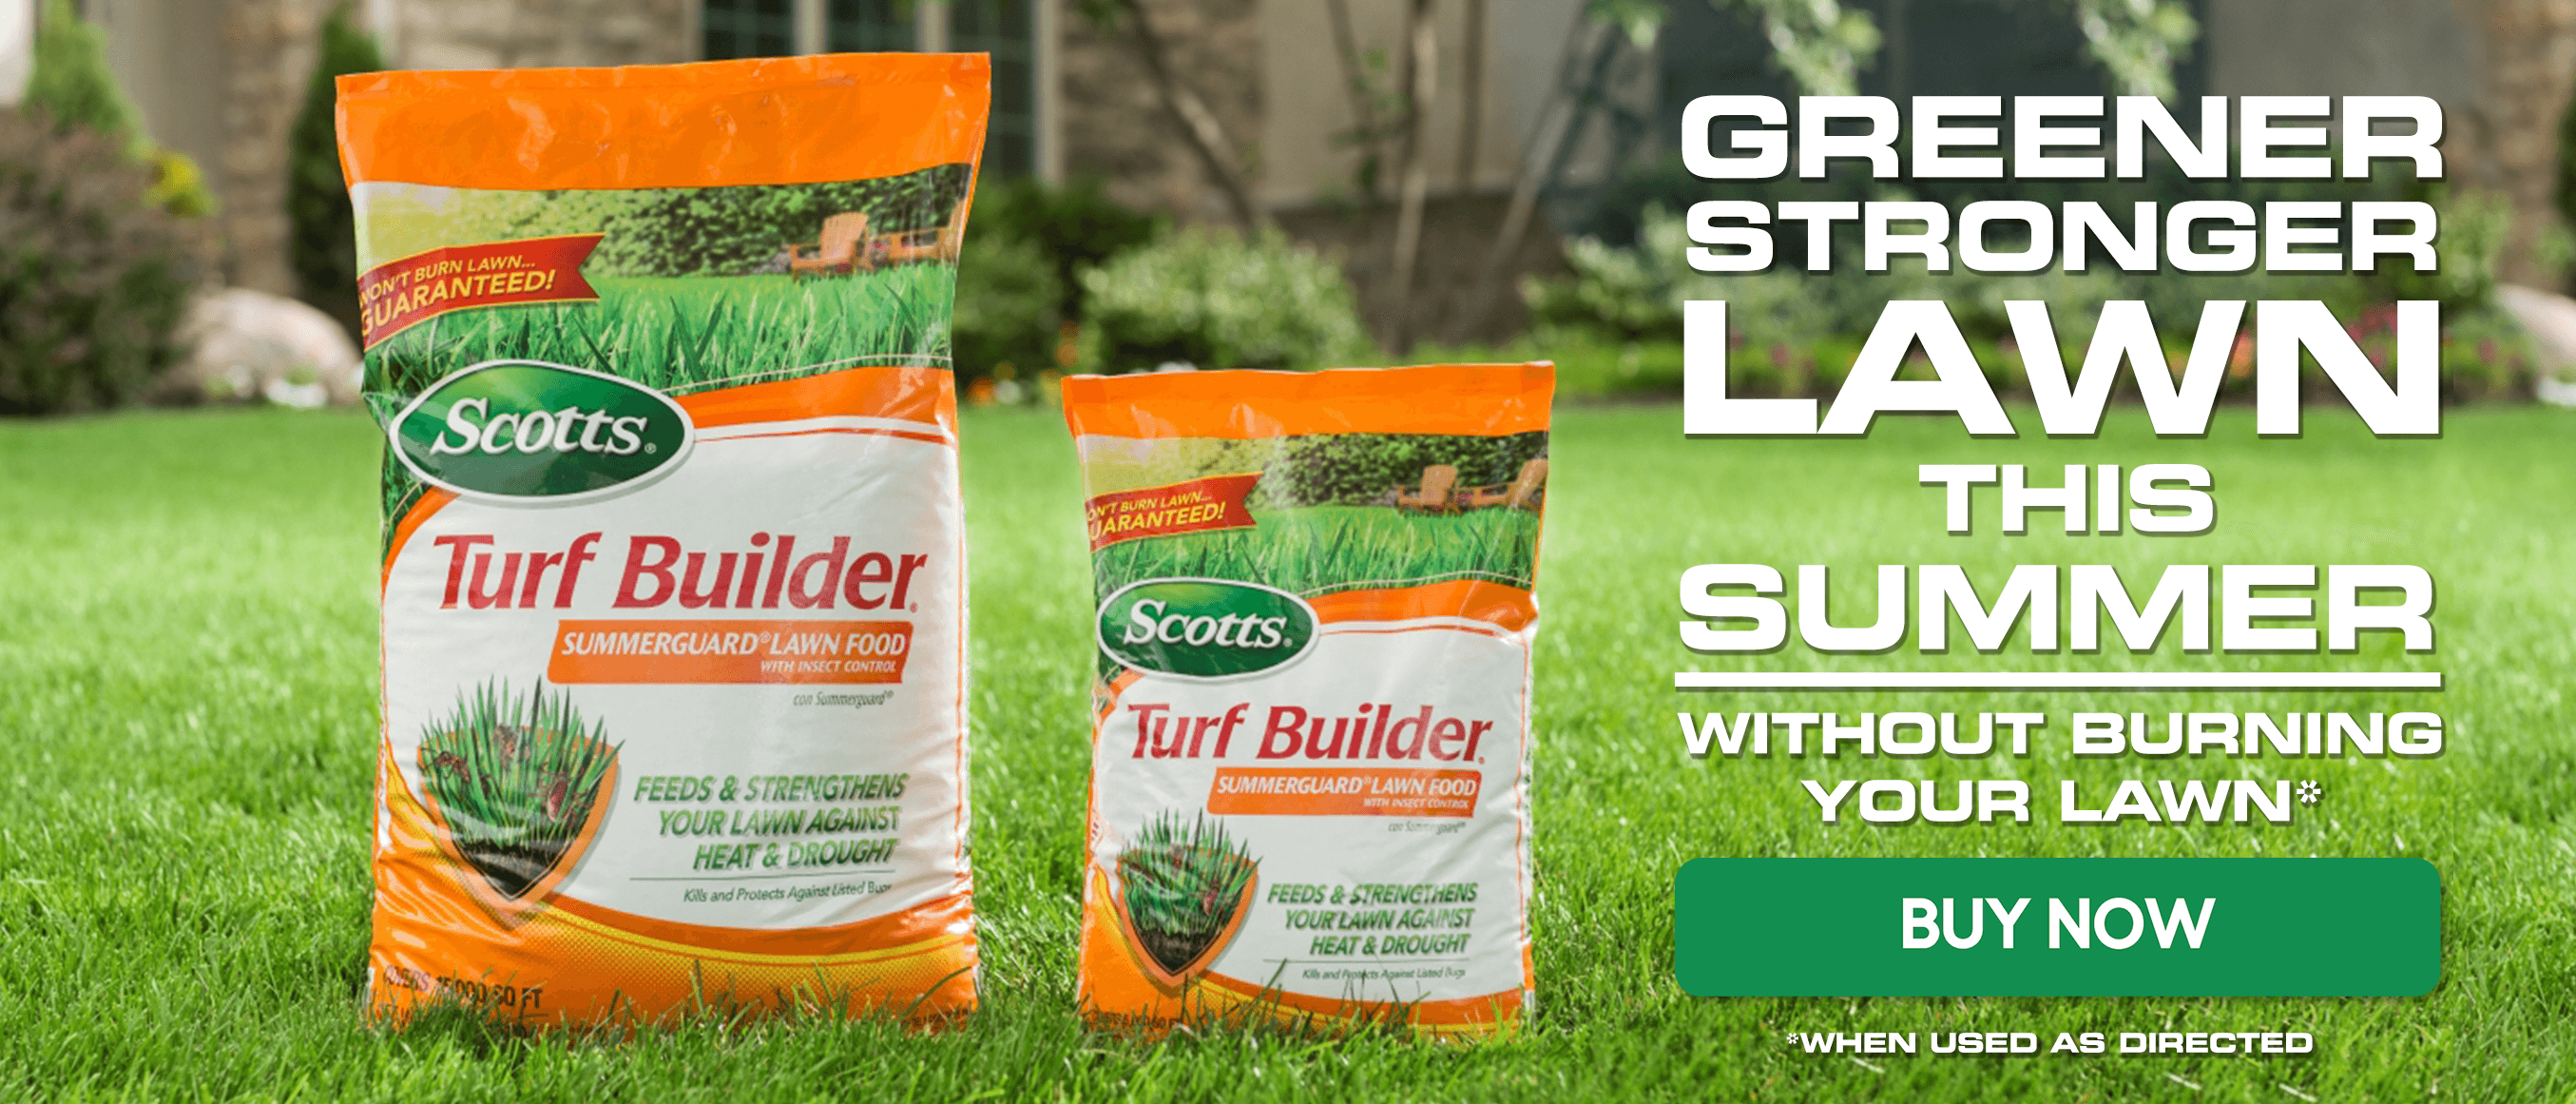 Summerguard - Greener Stronger Lawn This Summer Without Burning Your Lawn - Buy Now